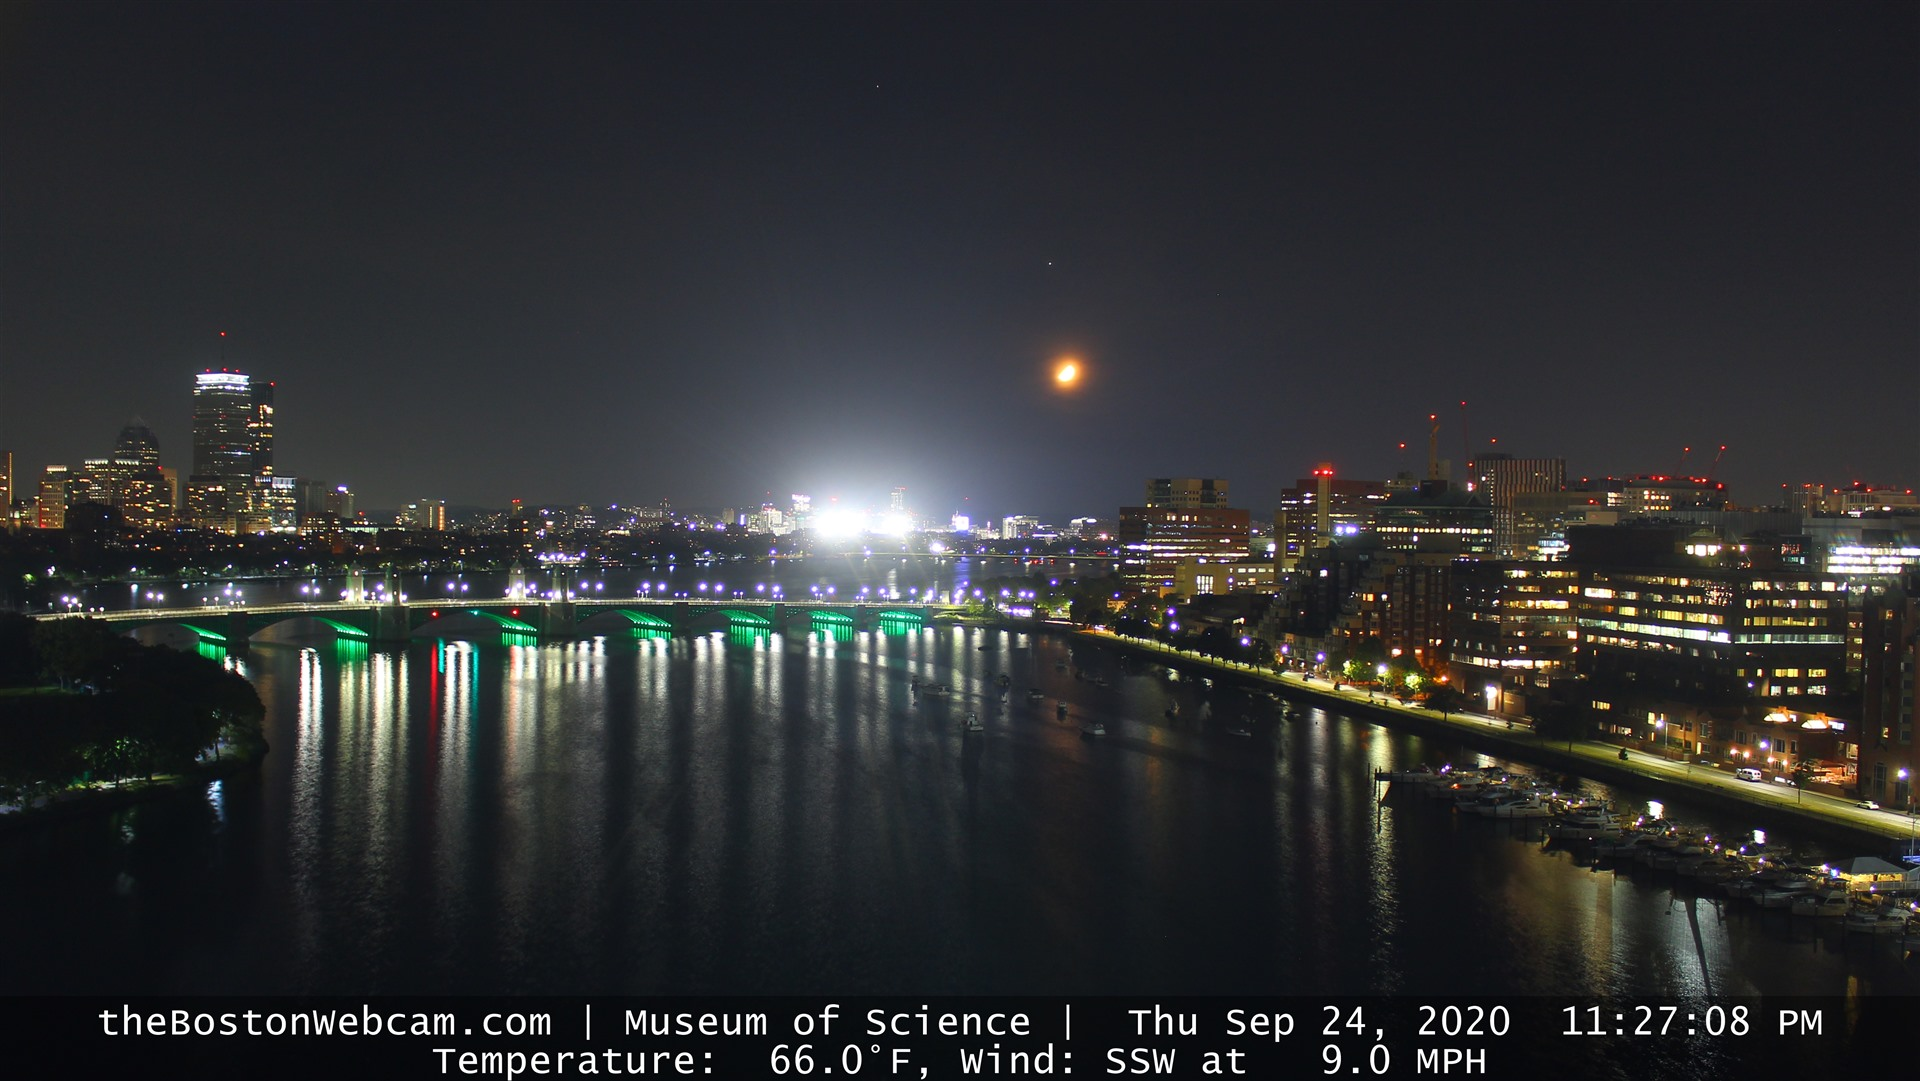 Boston Webcam